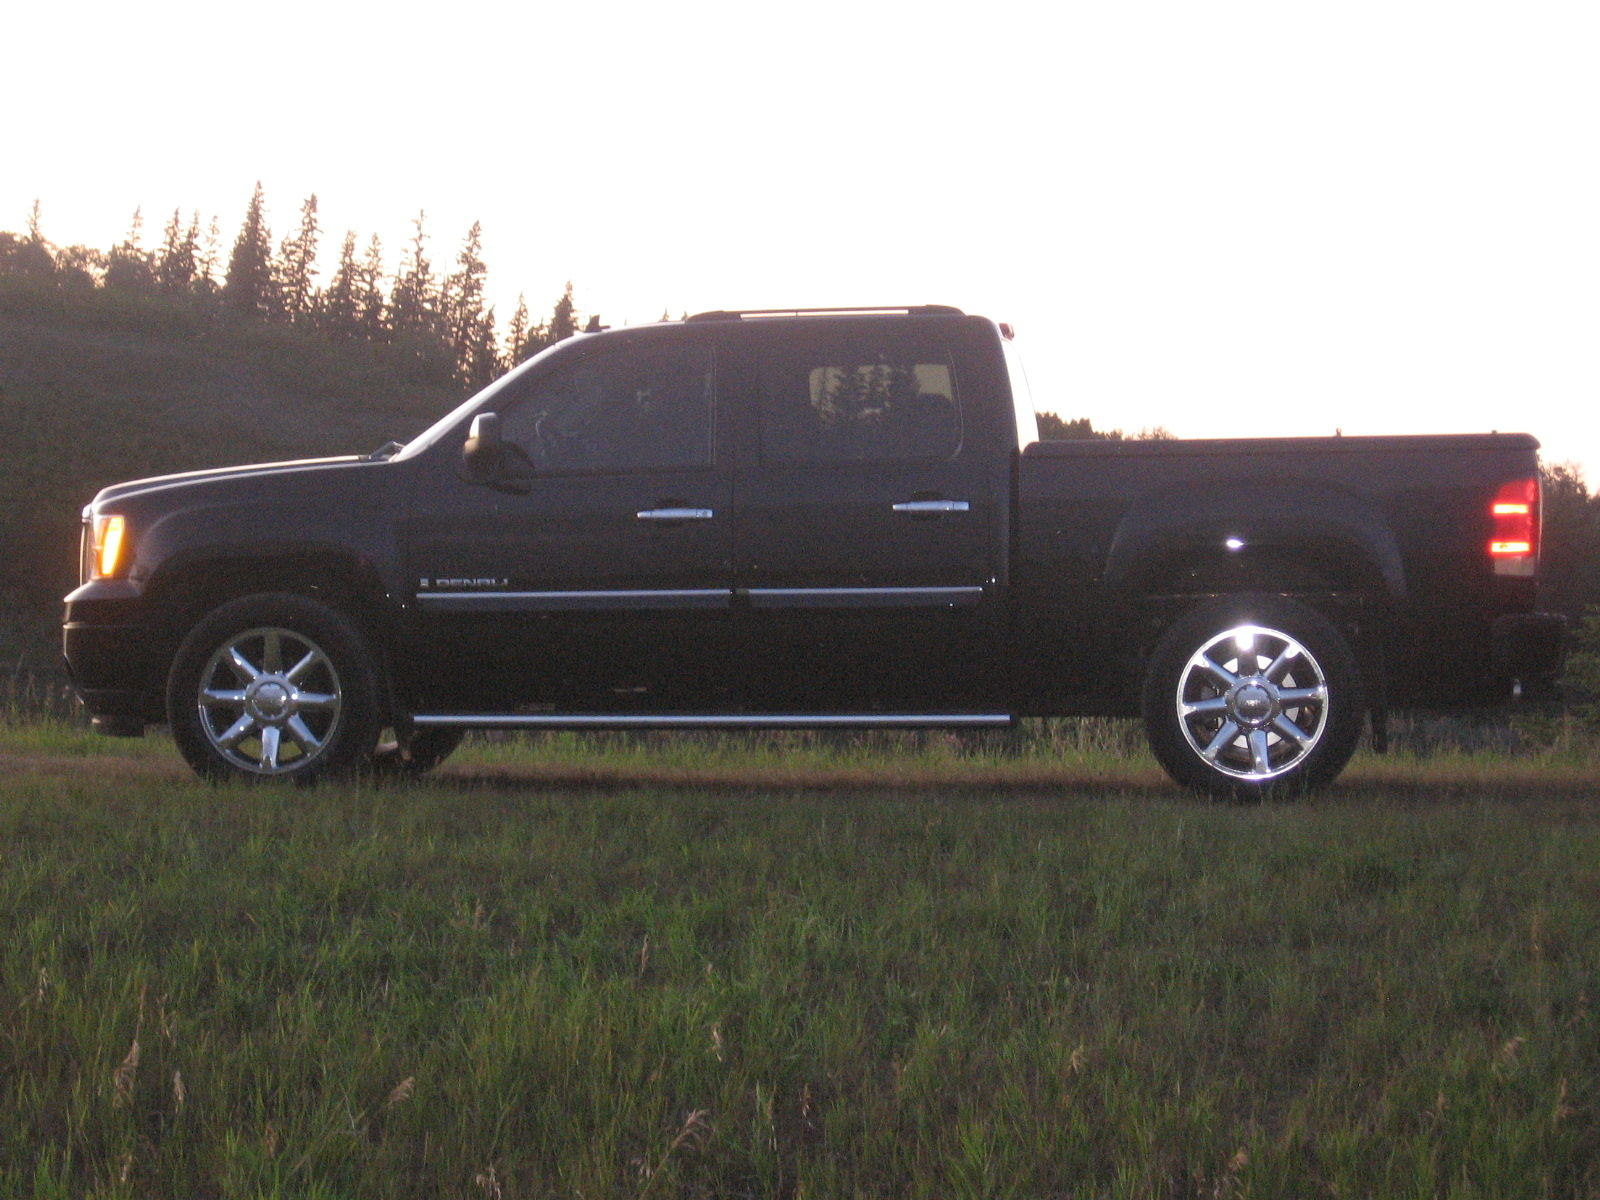 2009 Ford F 150 Overview Cargurus 1979 4x4 Chevy Trucks Silverado Fuse Diagram Picture Of Gmc Sierra 1500 Exterior Gallery Worthy